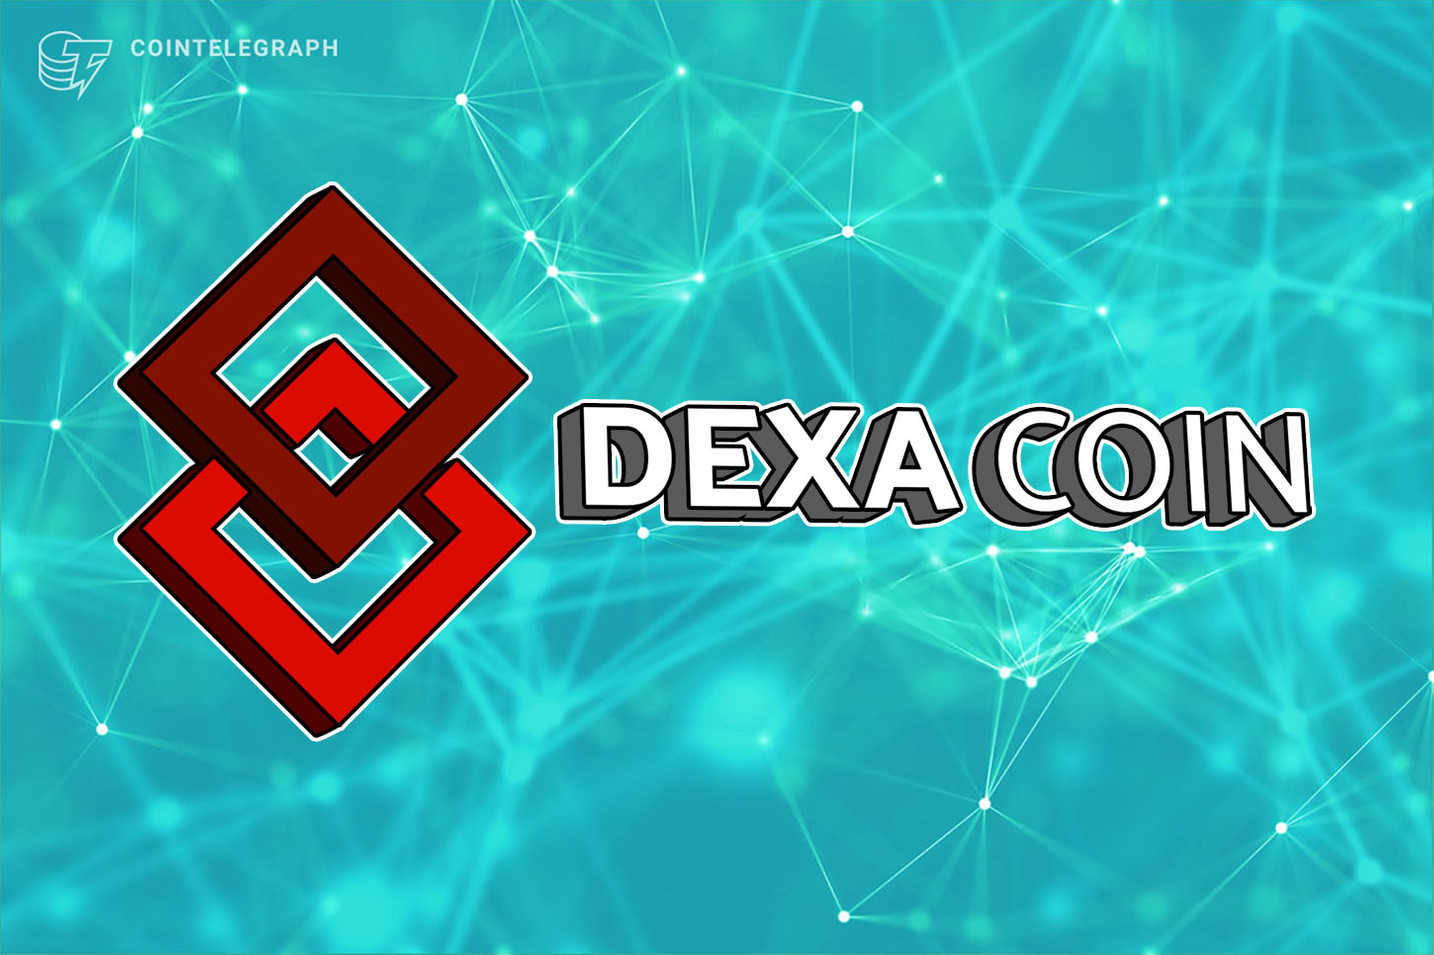 Dexa Coin to launch social messenger app with peer-to-peer payments